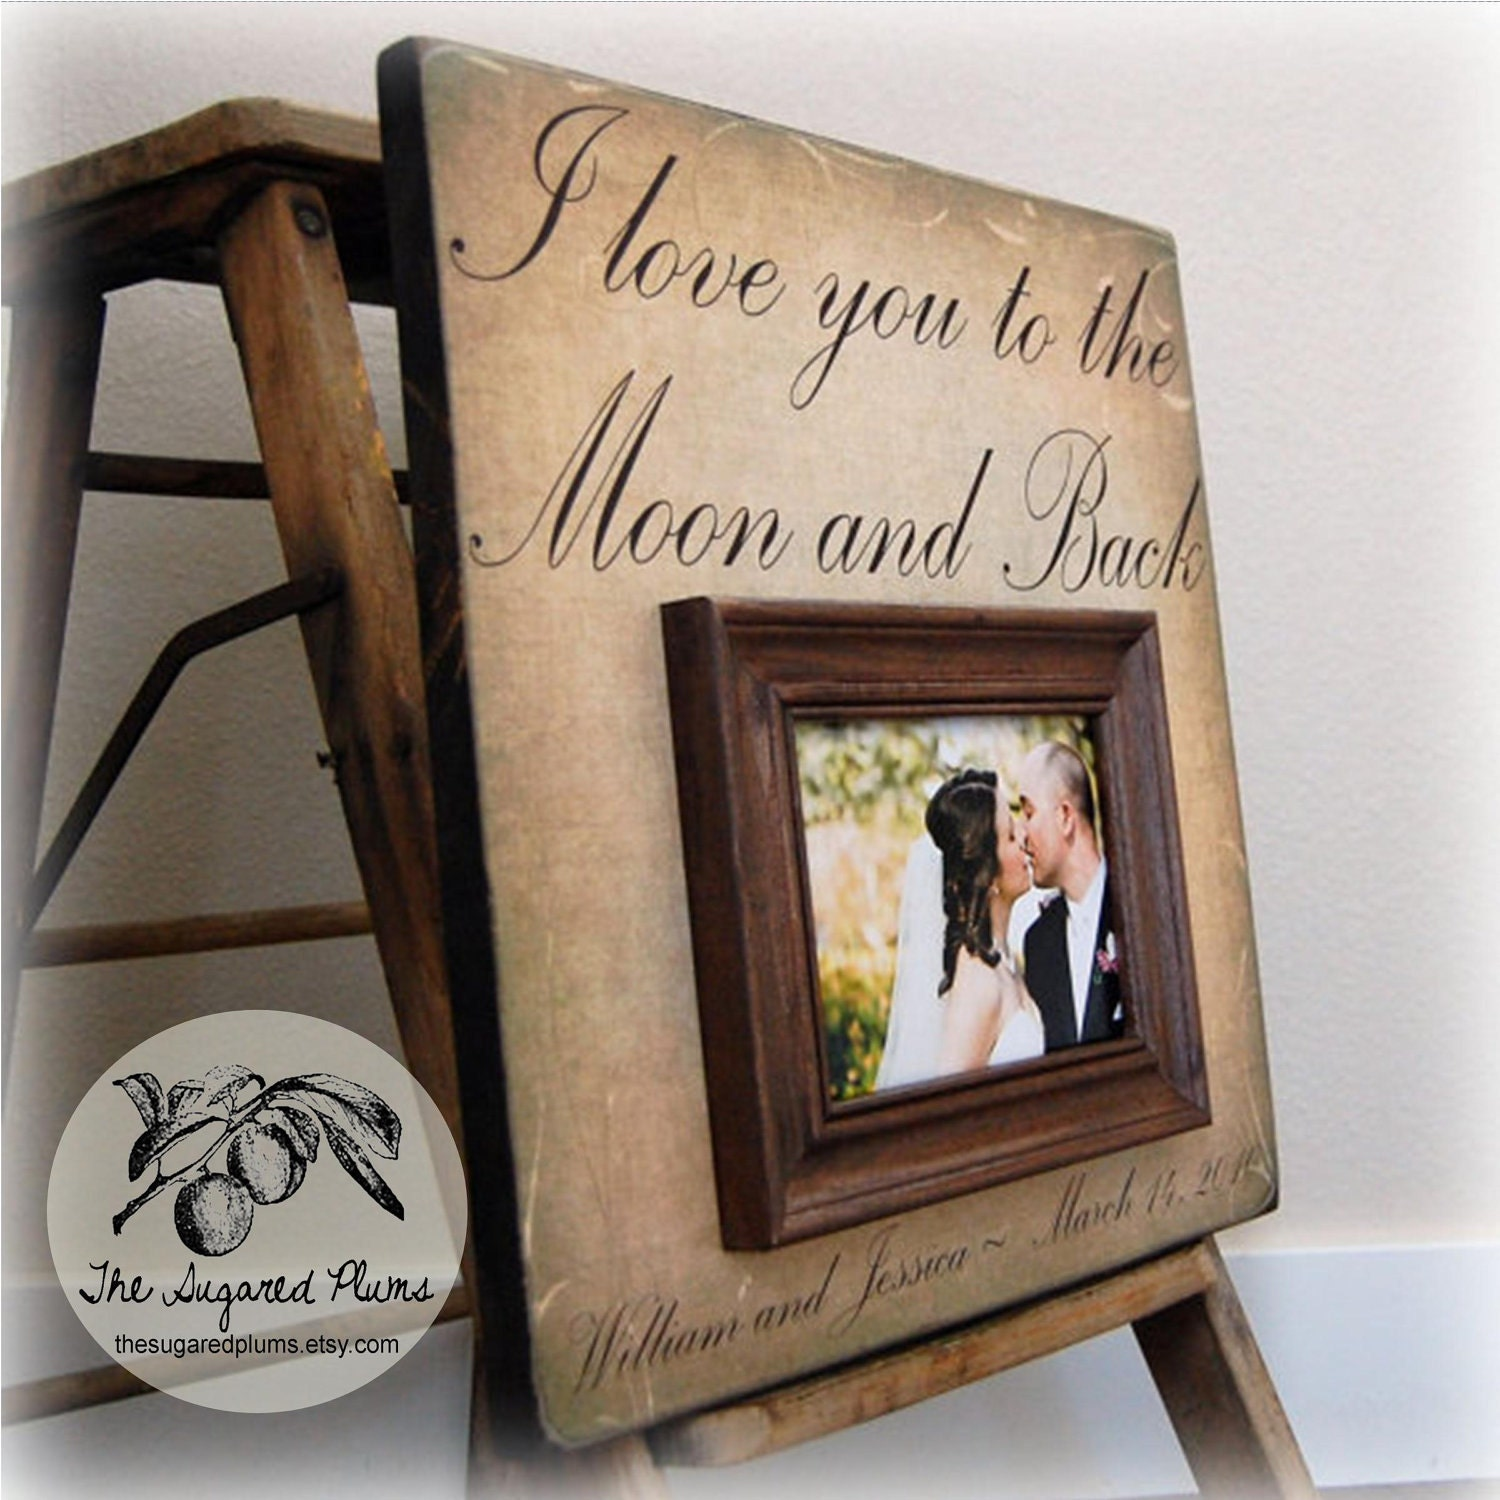 Wedding Gift Personalized Picture Frame : Anniversary Gift Personalized Picture Frame Custom Frames 16x16 I Love ...